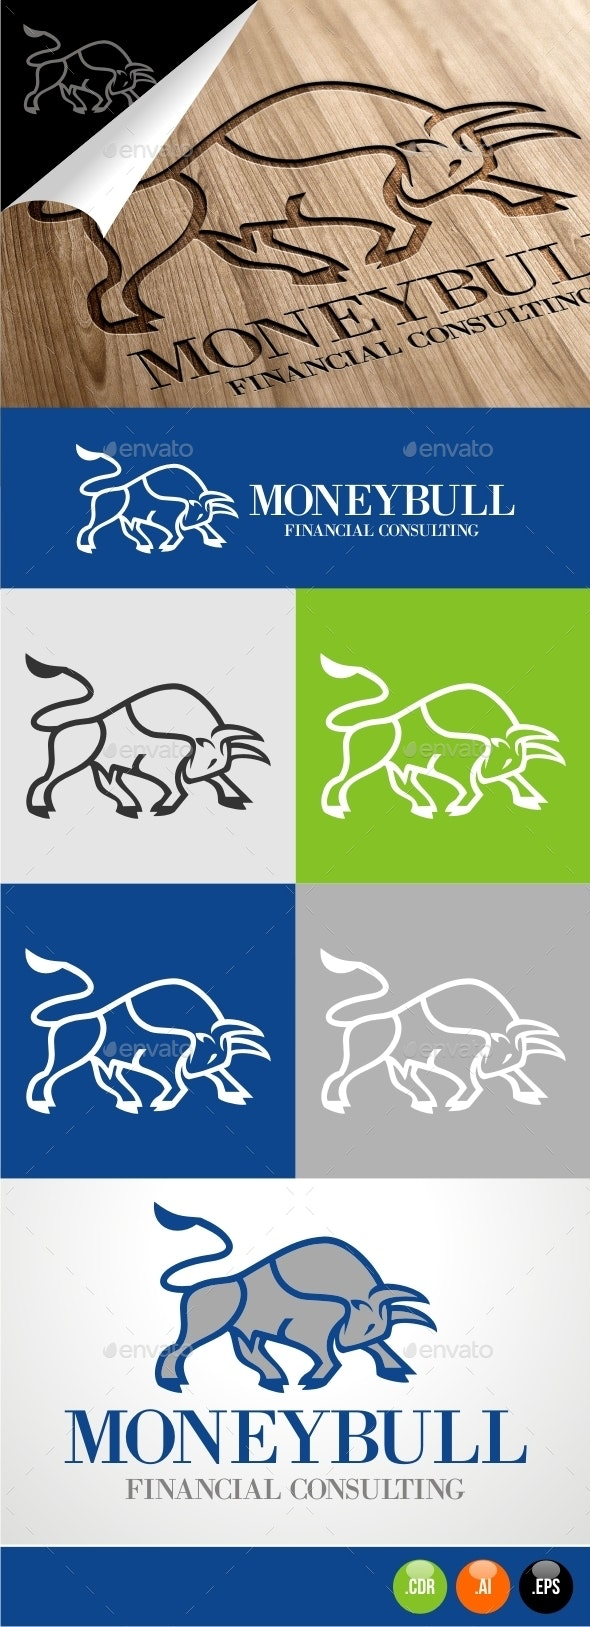 Money Bull Financial Consulting